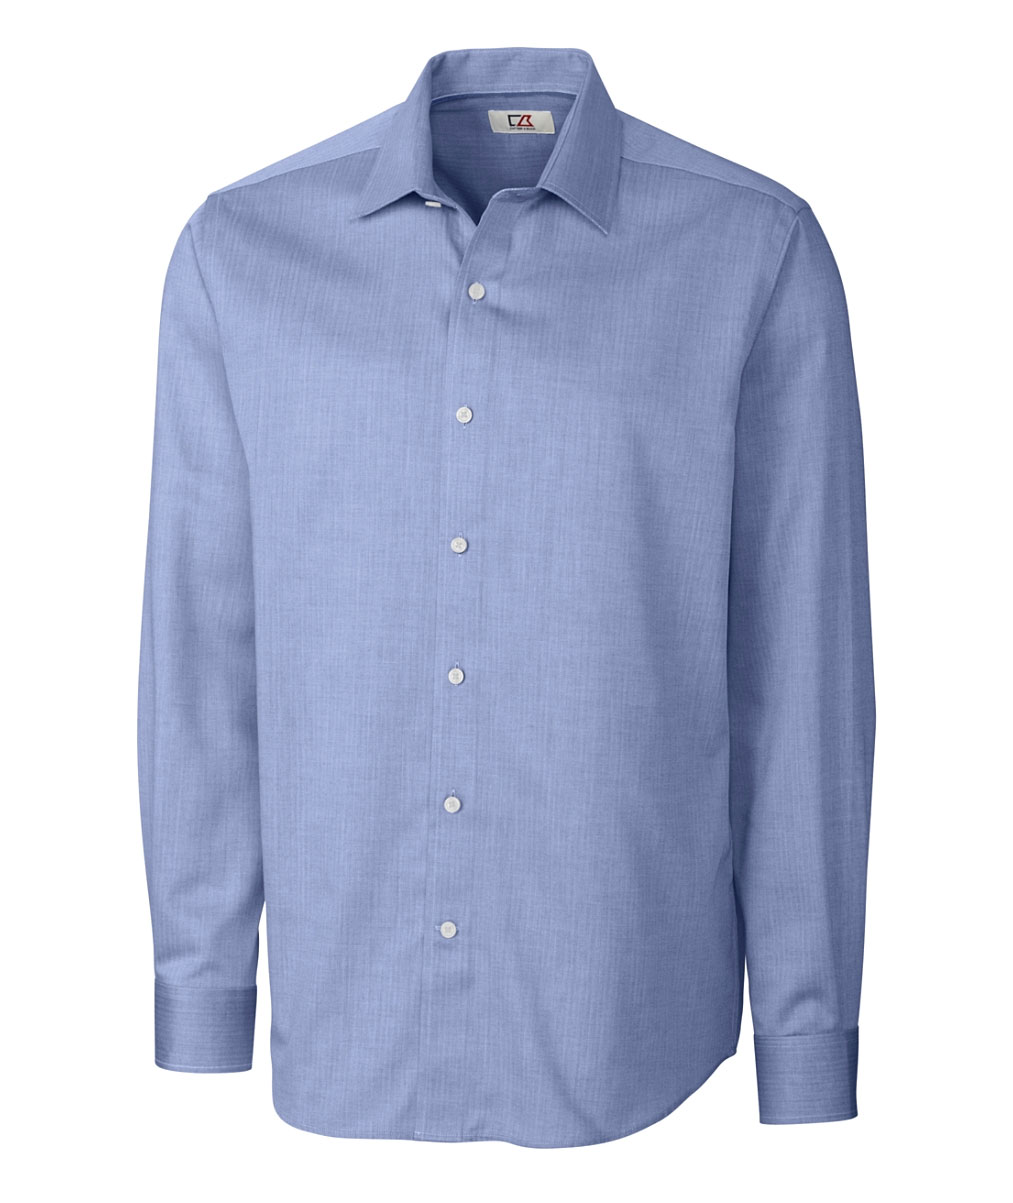 Mens Easy Care Mini Herringbone Dress Shirt